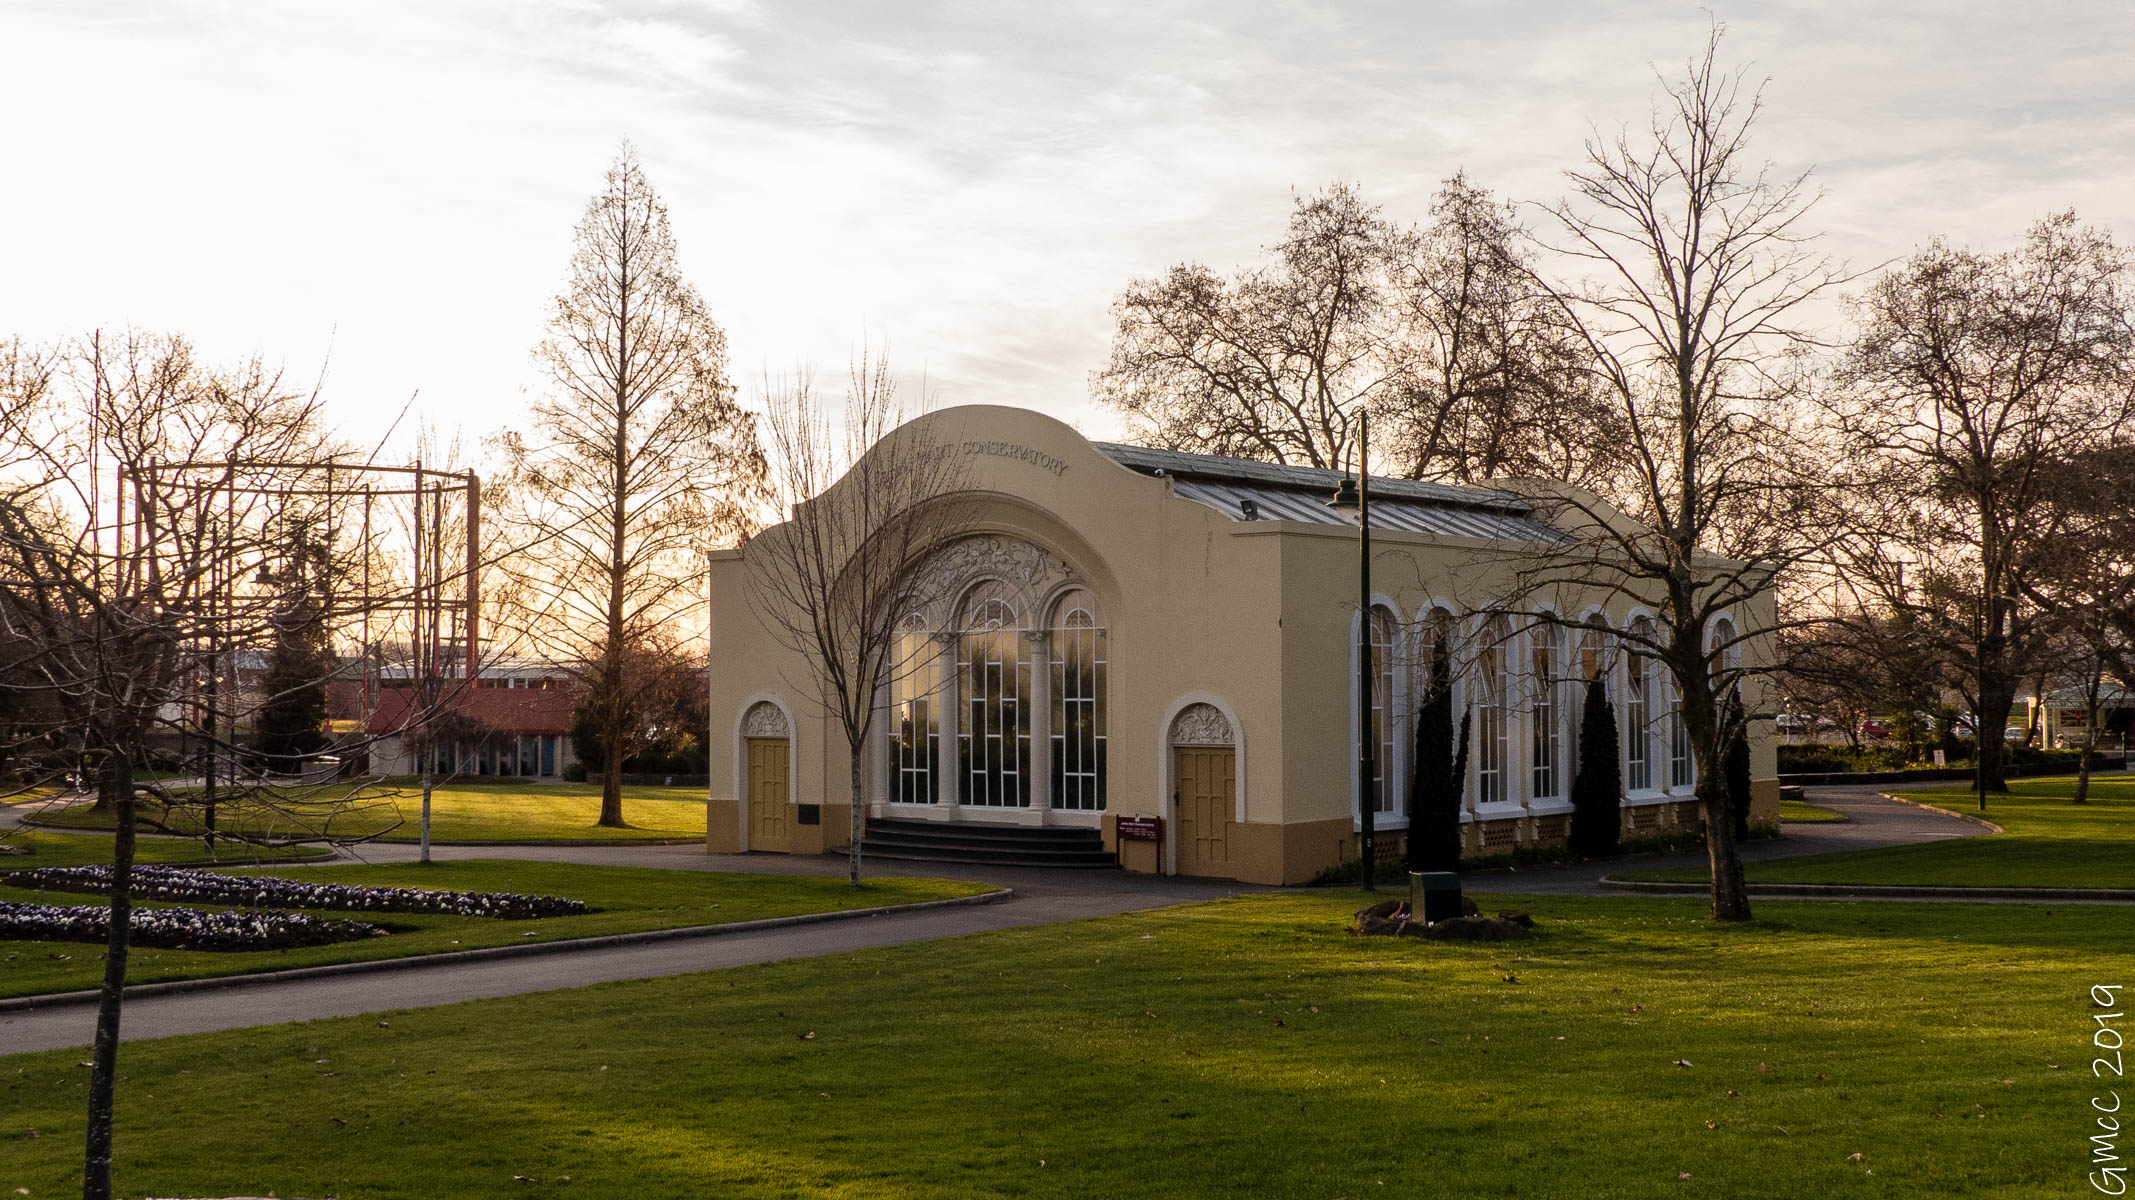 7 Best Things To Do in Launceston, Australia [with Suggested Tours]